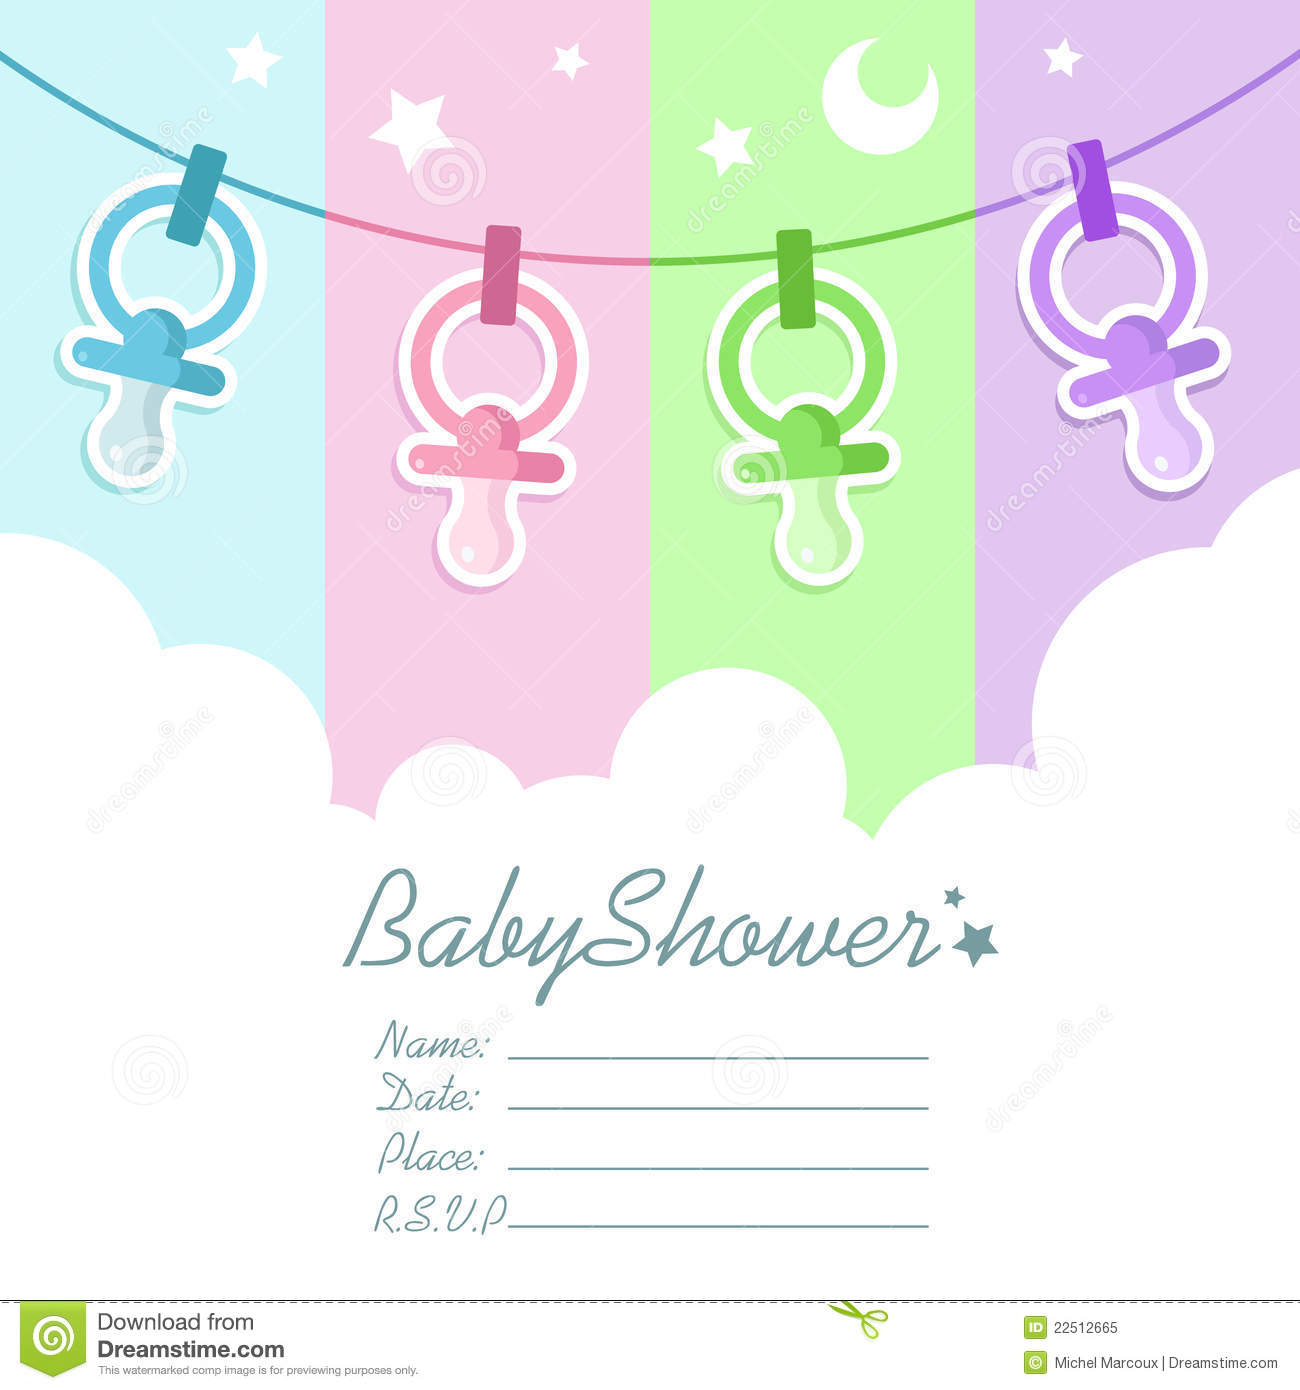 baby shower invitation stock vector illustration of birthday 40614296